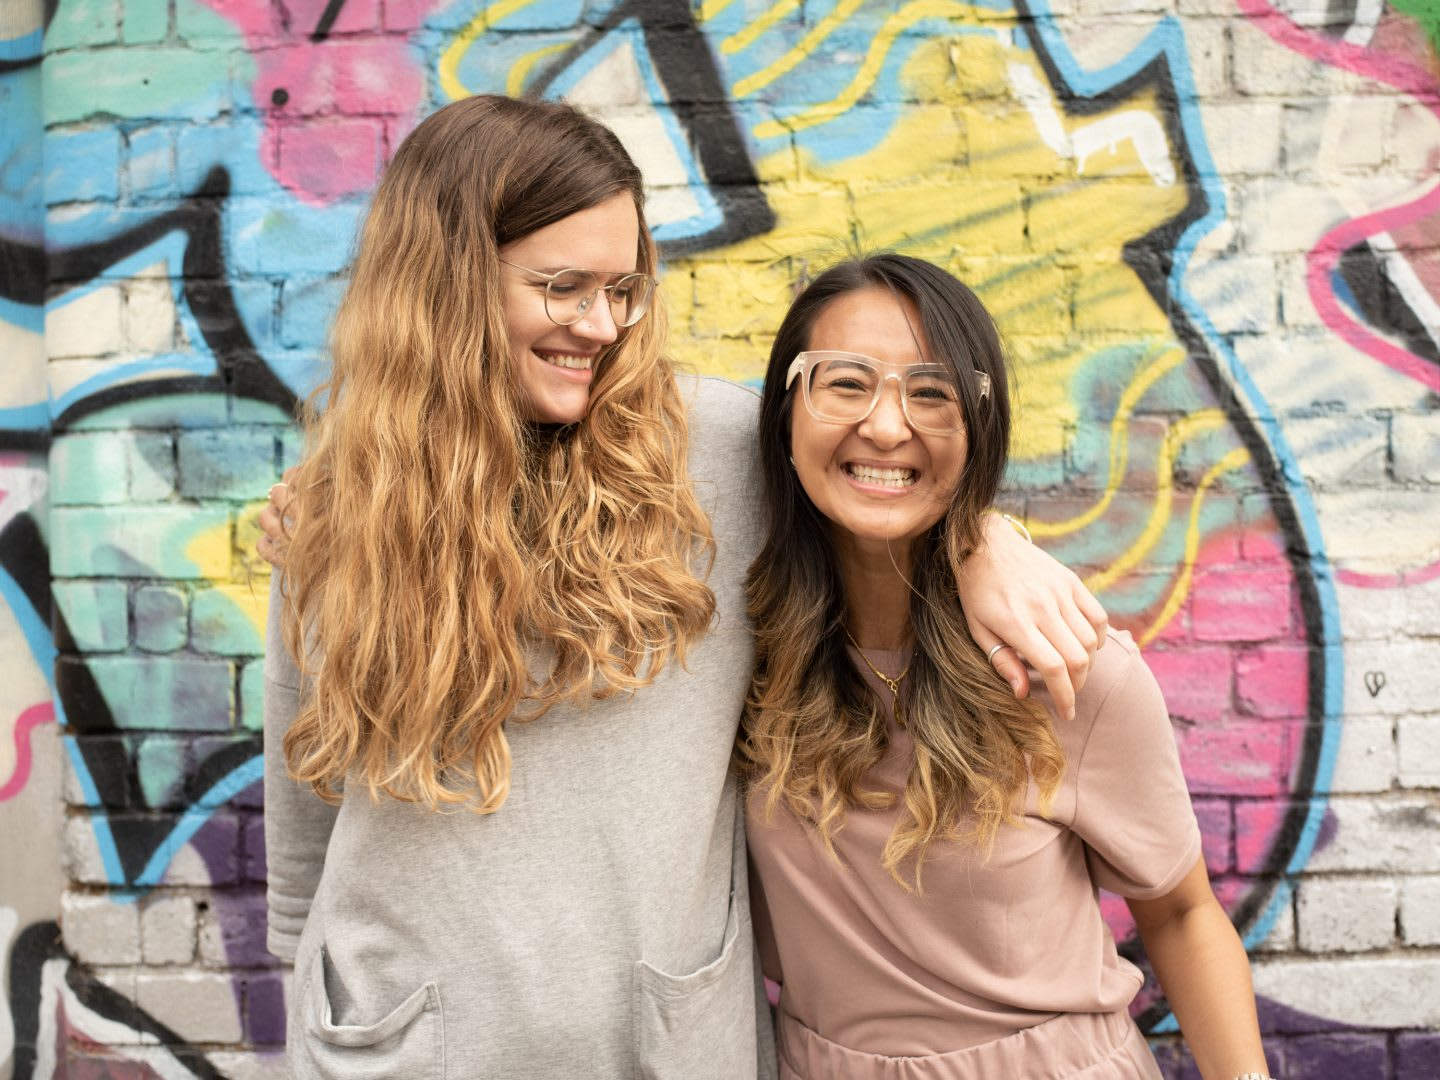 Two friends wrap an arm around each other smiling. friends, smiling, happy, graffiti